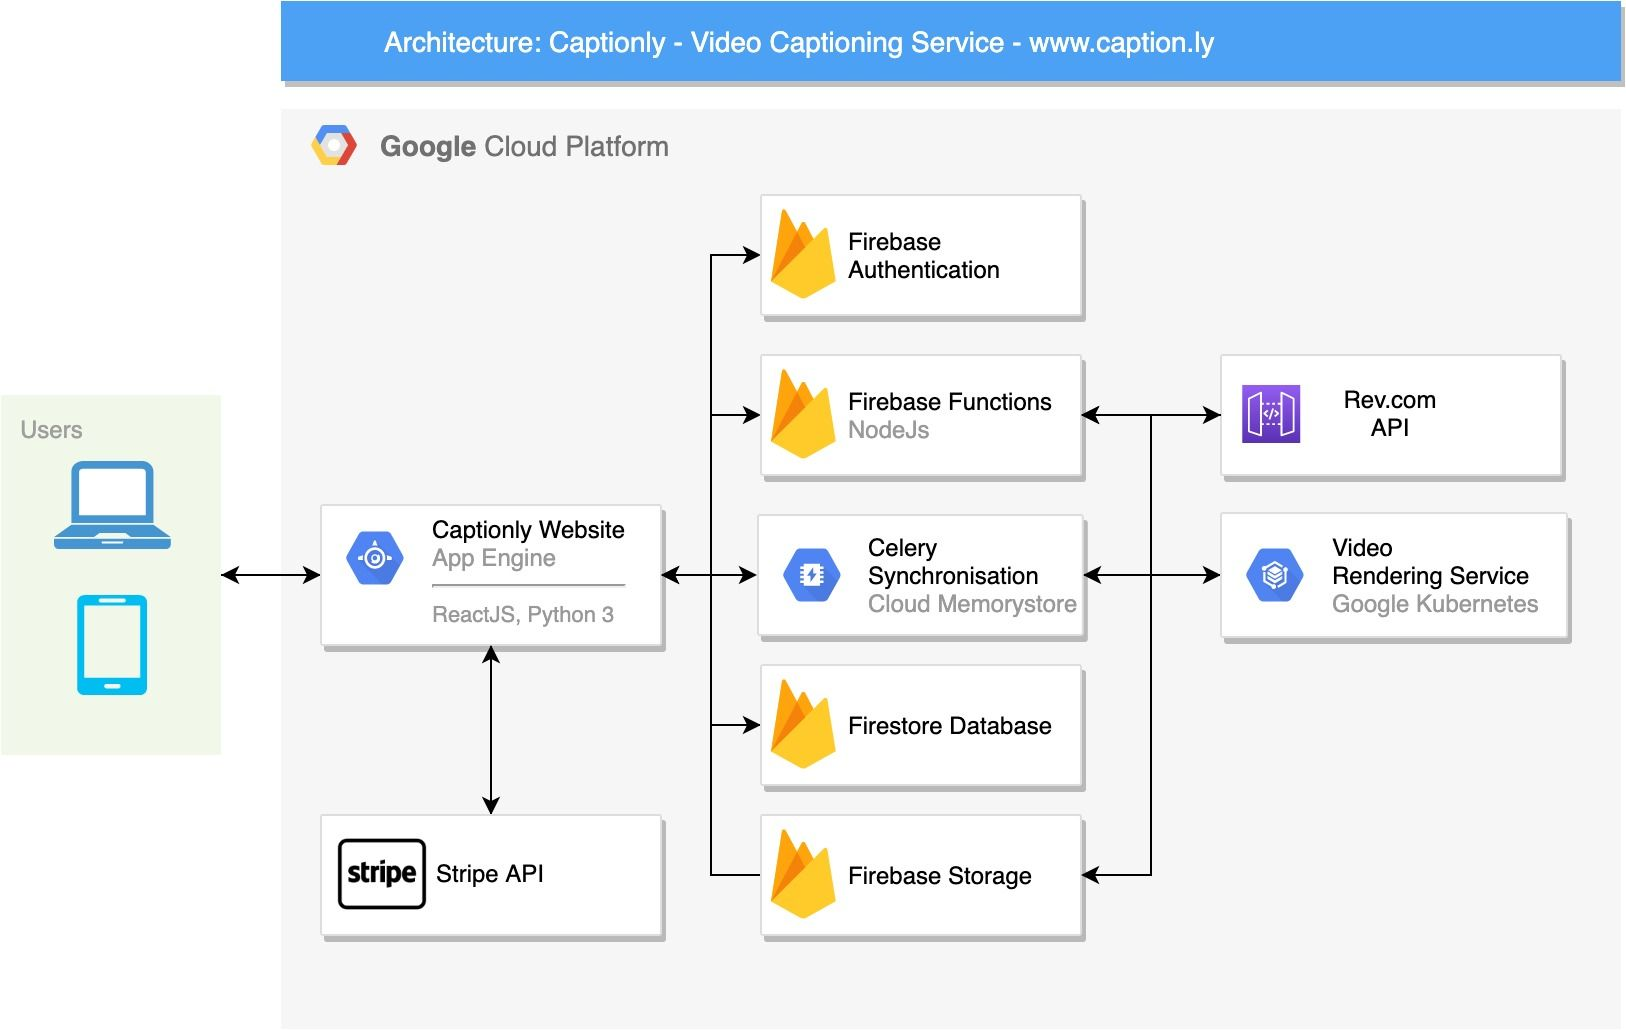 Captionly Architecture Diagram on Google Cloud